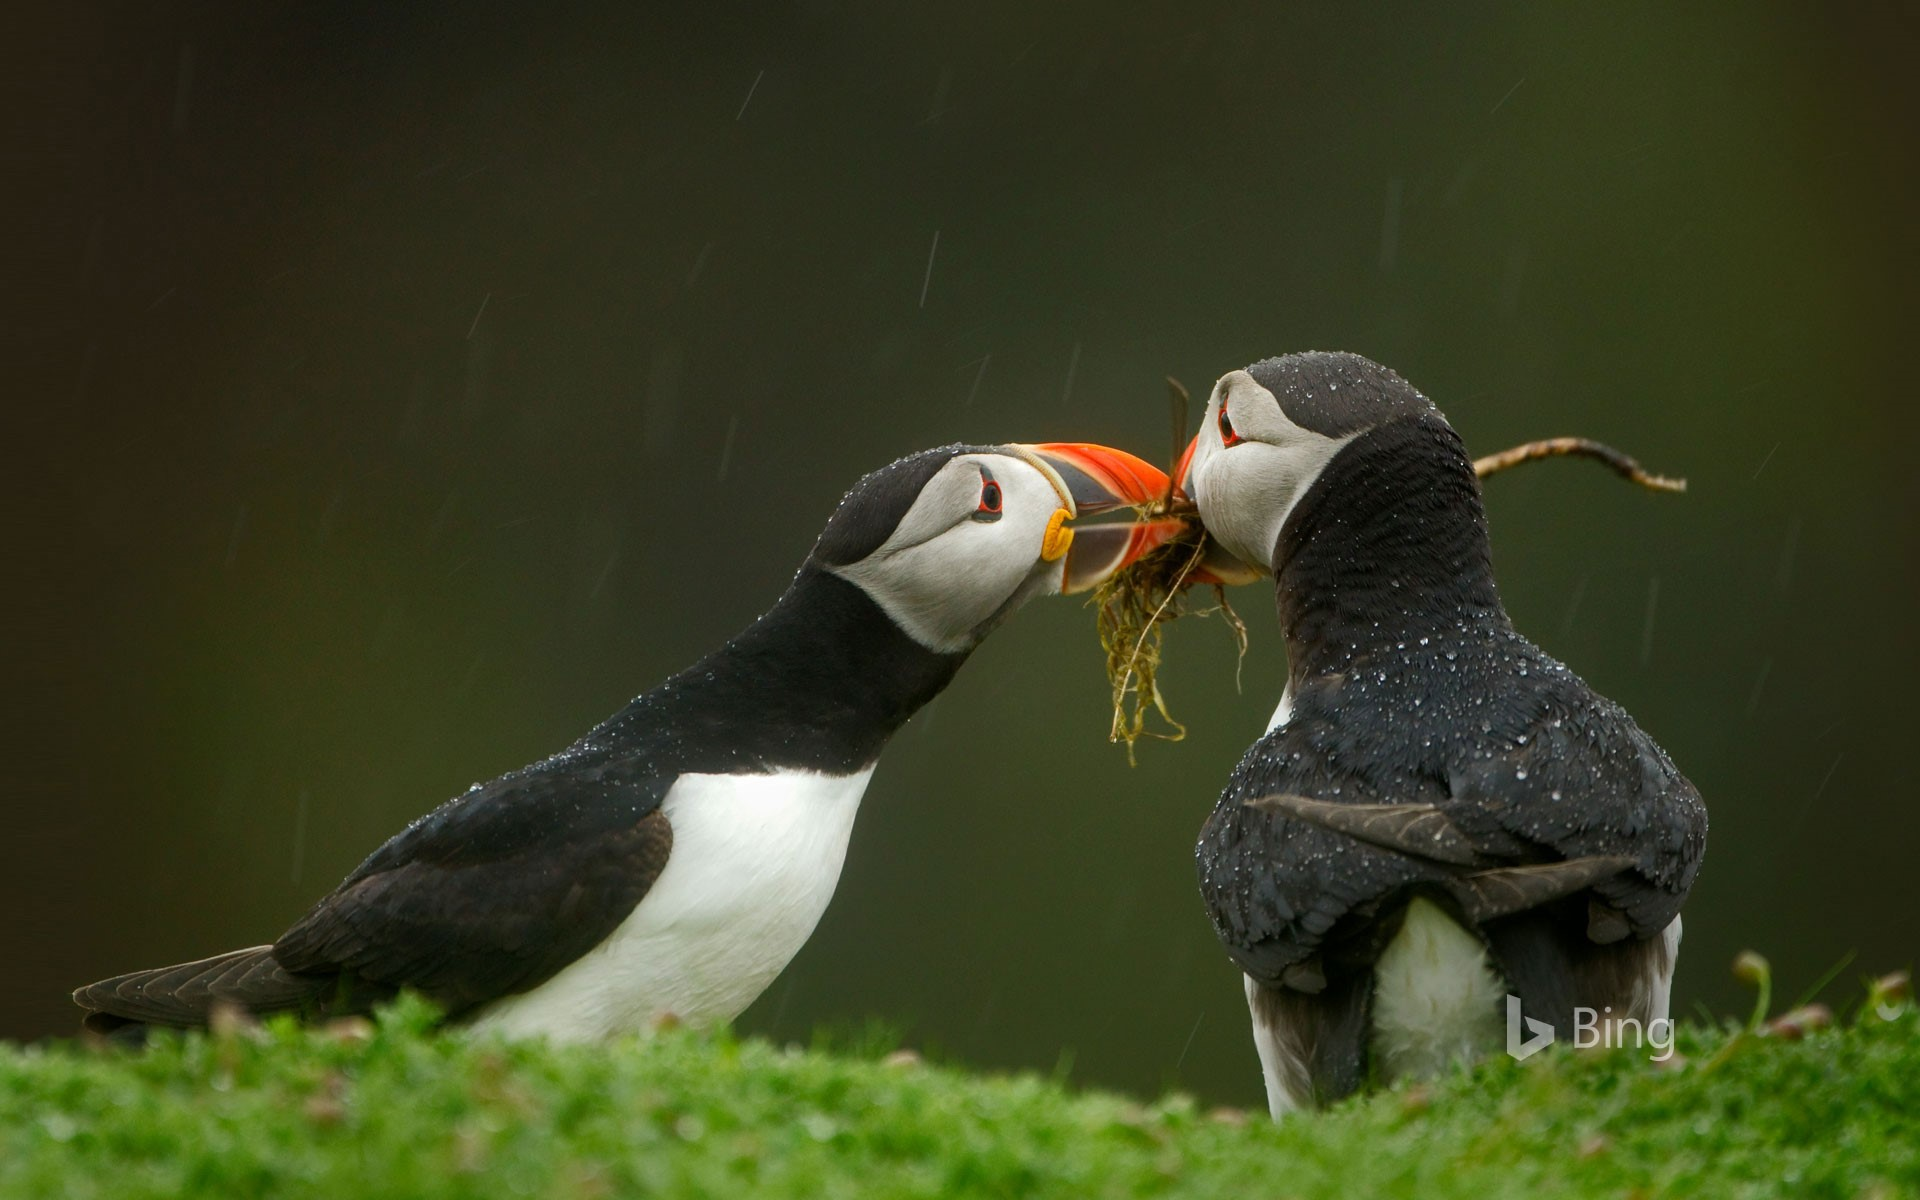 Male Atlantic puffin gives his mate nesting material, Skomer Island, Wales